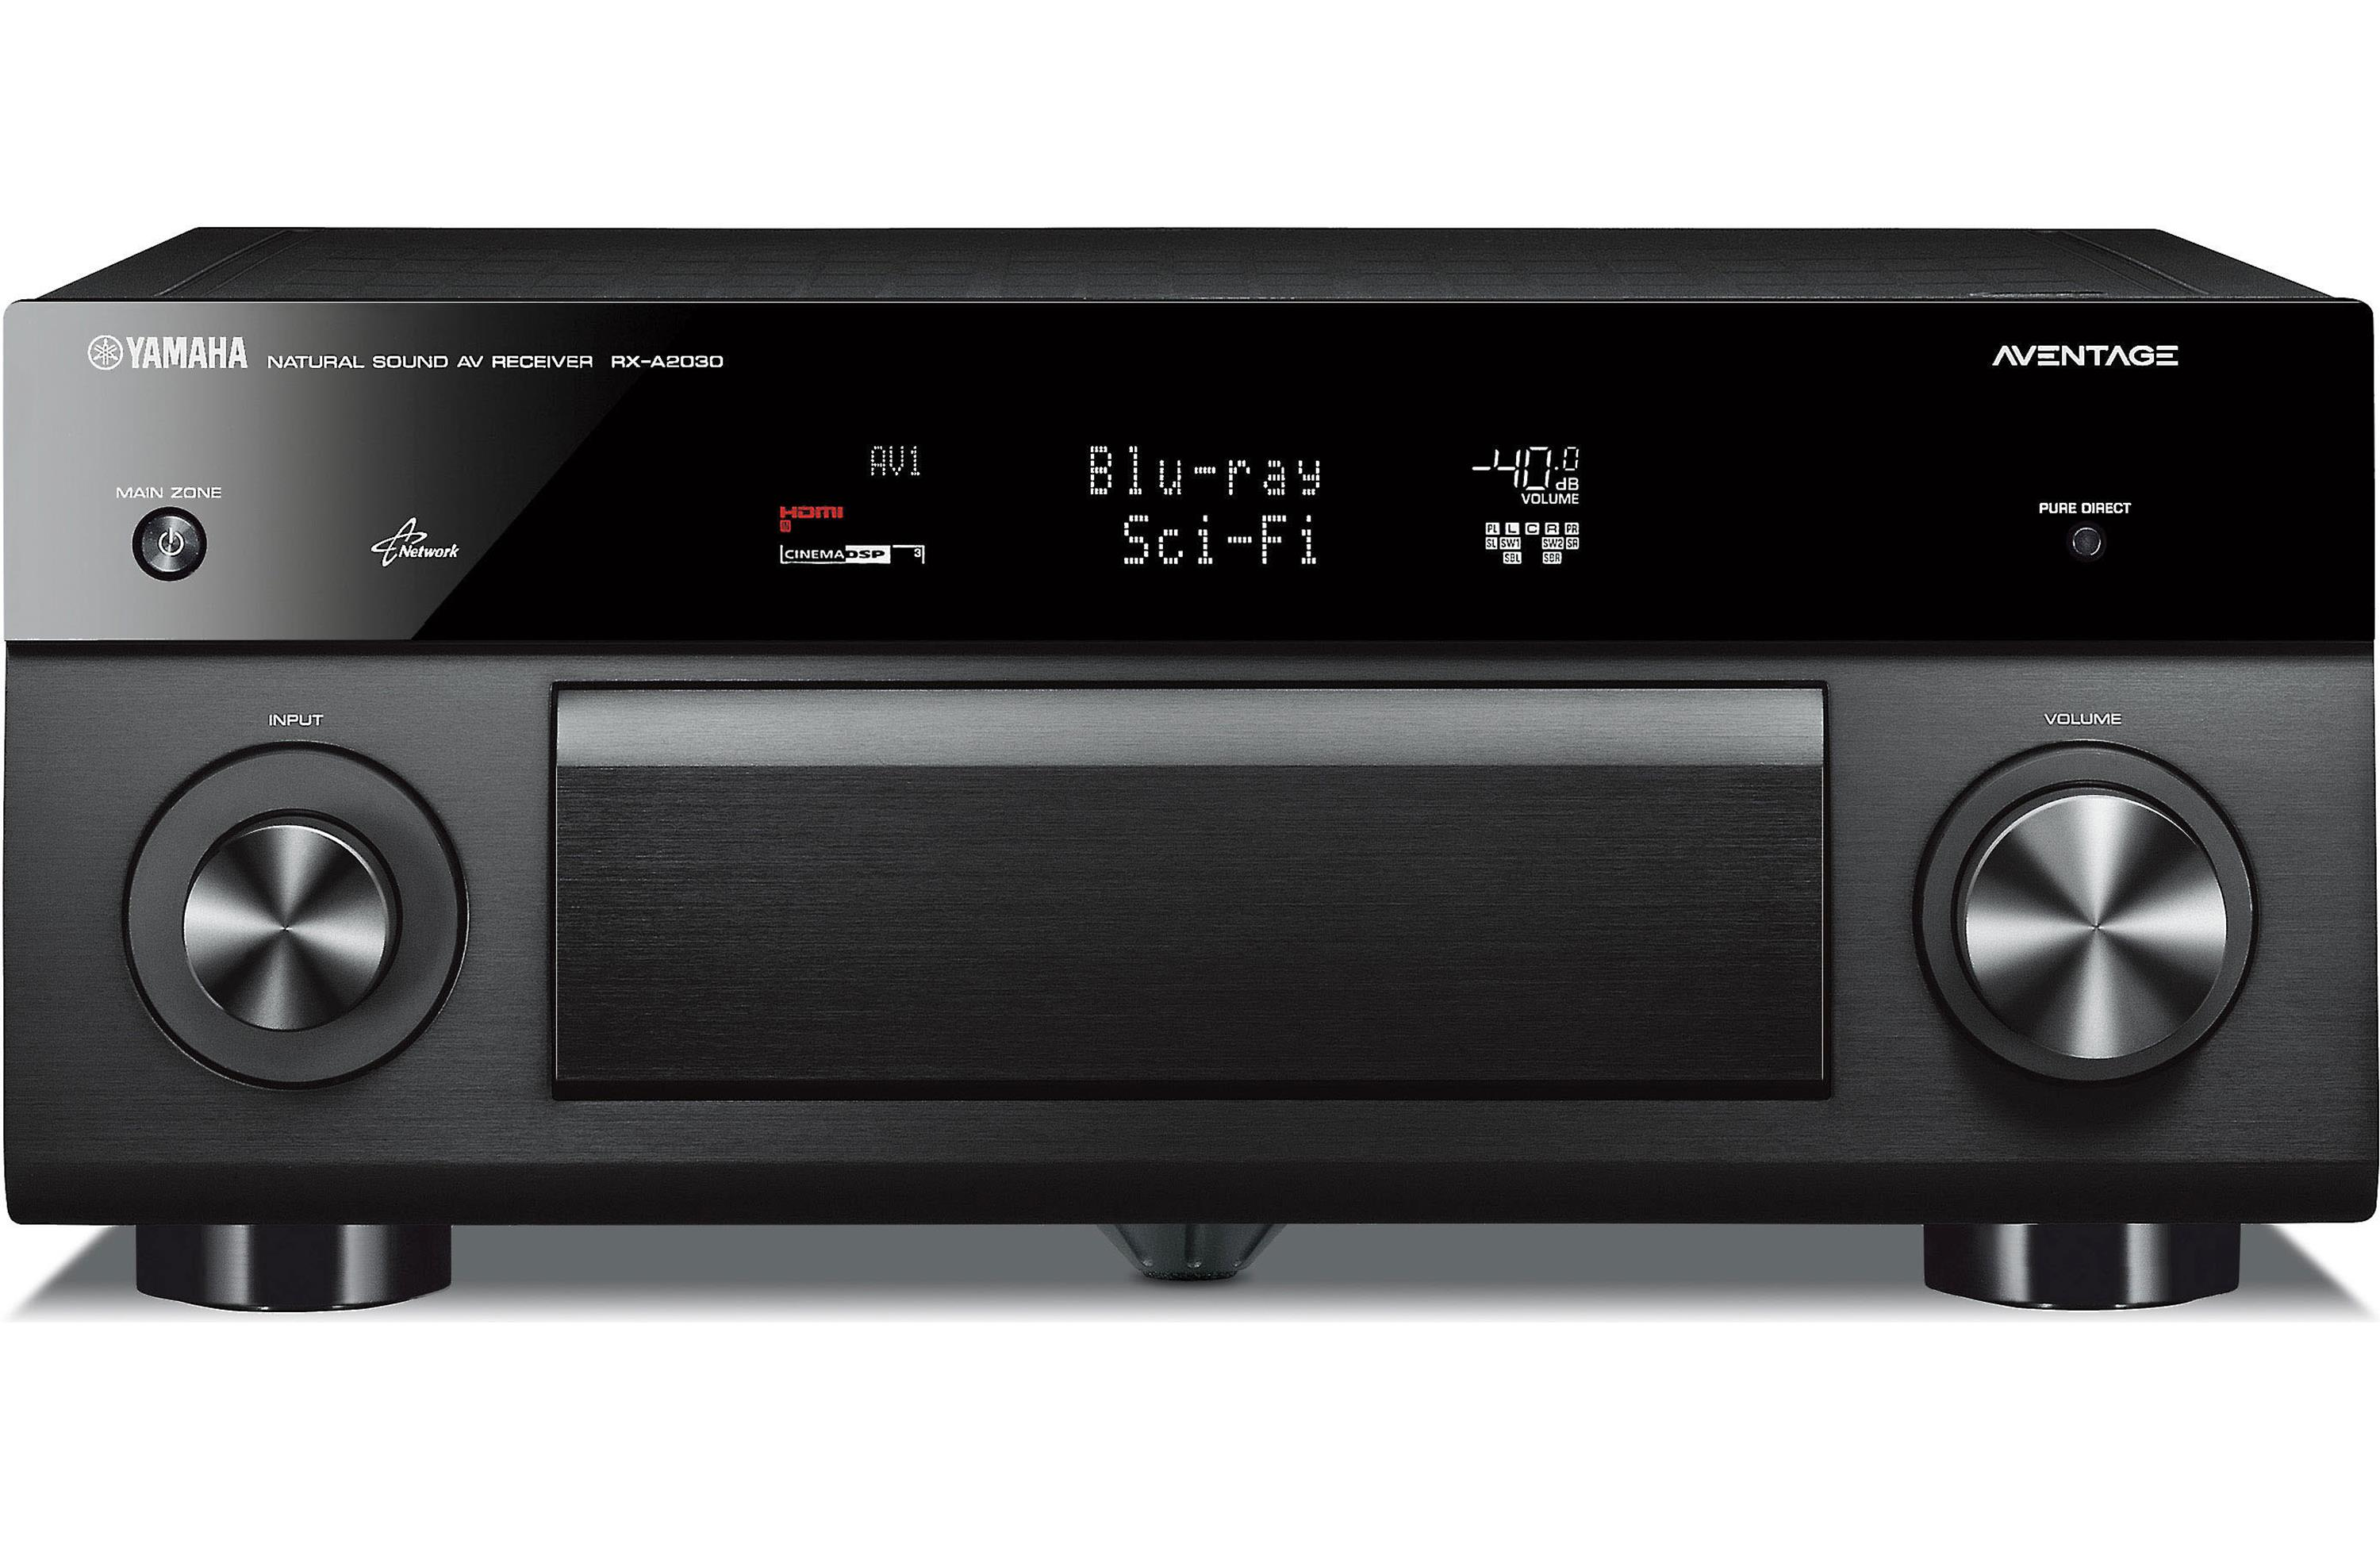 Yamaha AVENTAGE RX-A2030 9.2-Channel Home Theater Receiver  Yamaha11